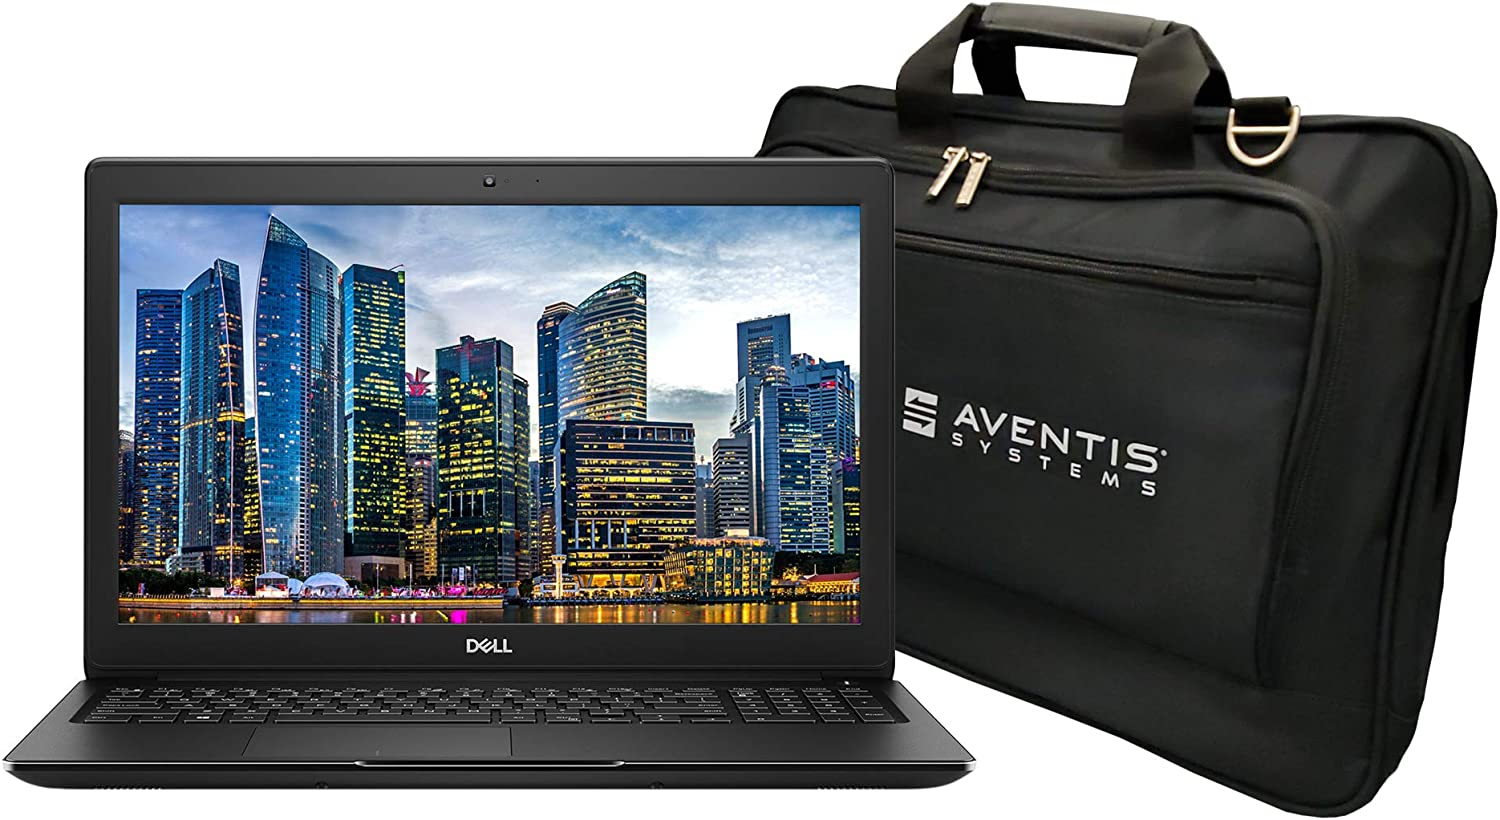 2020 Dell Latitude 3500 15.6 Inch FHD Laptop Bundle with Intel Core i7-8565U, 8GB DDR4, 256GB SSD, GeForce MX130 Graphics Card, Laptop Bag, Webcam, Microphone, Bluetooth, and Windows 10 Pro